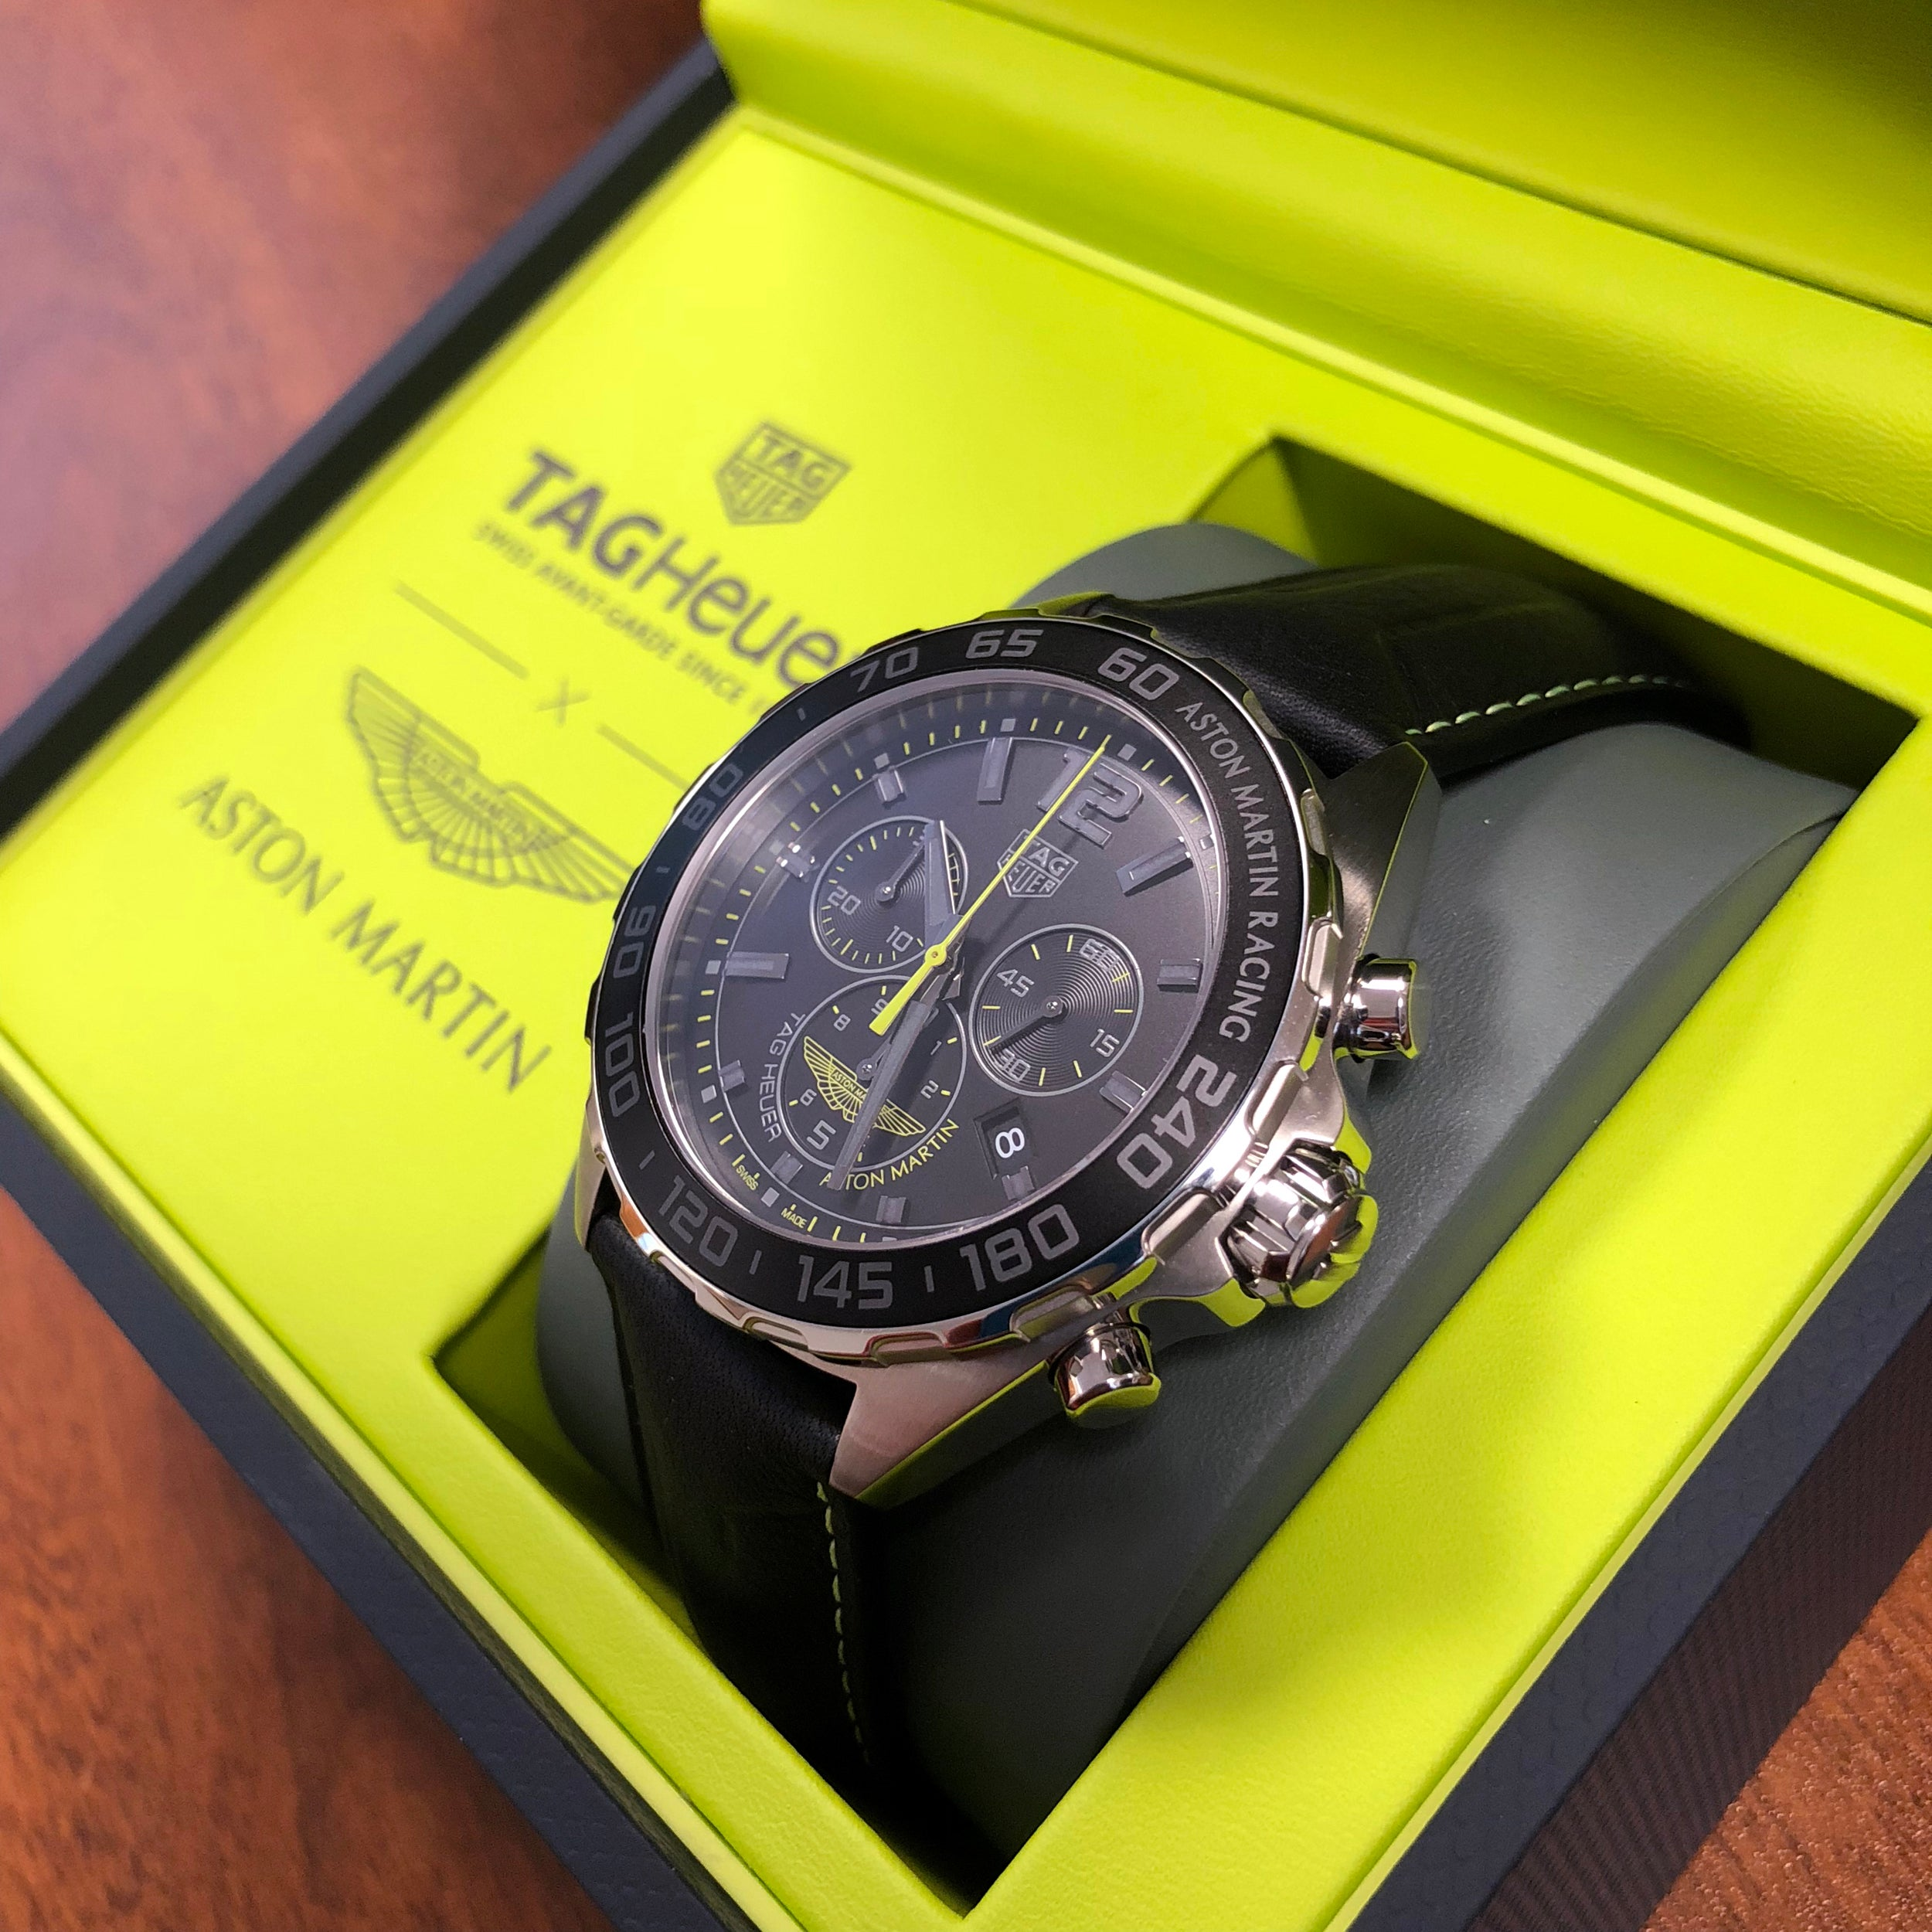 Tag Heuer Aston Martin Price Shop Clothing Shoes Online